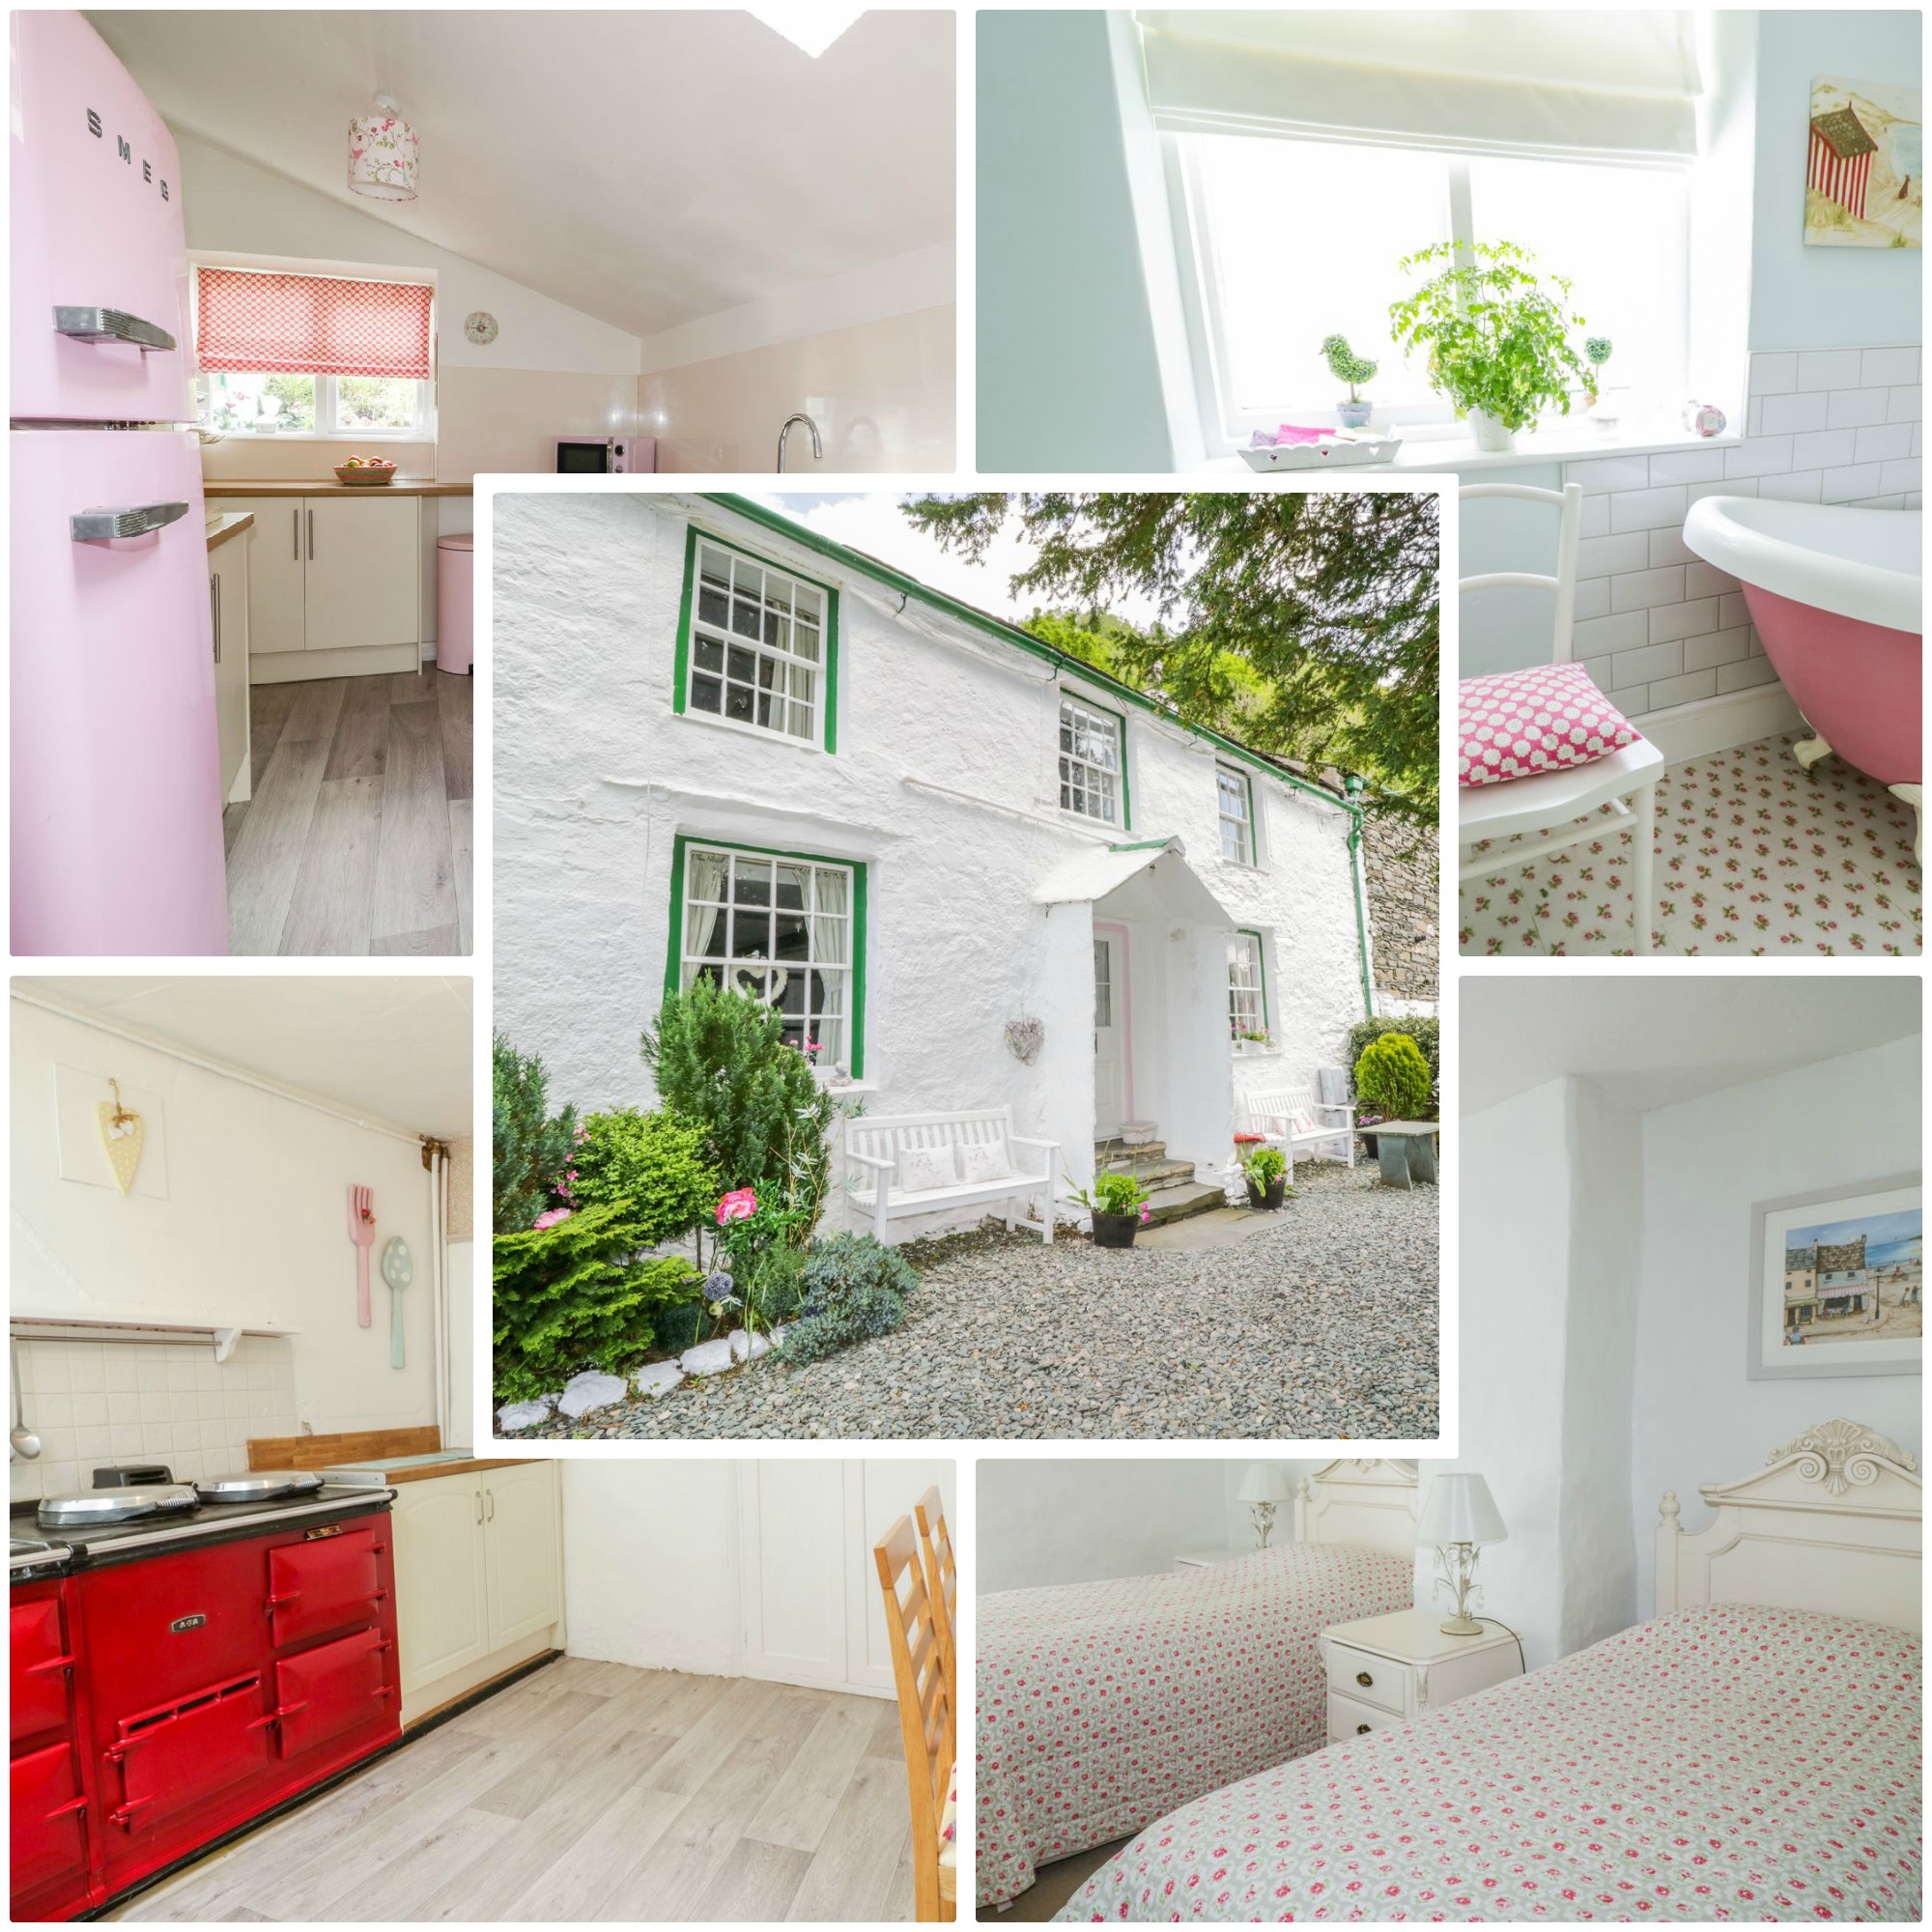 glowing reviews for this beautiful Lakeland cottage - a must for those with kids who love pink!